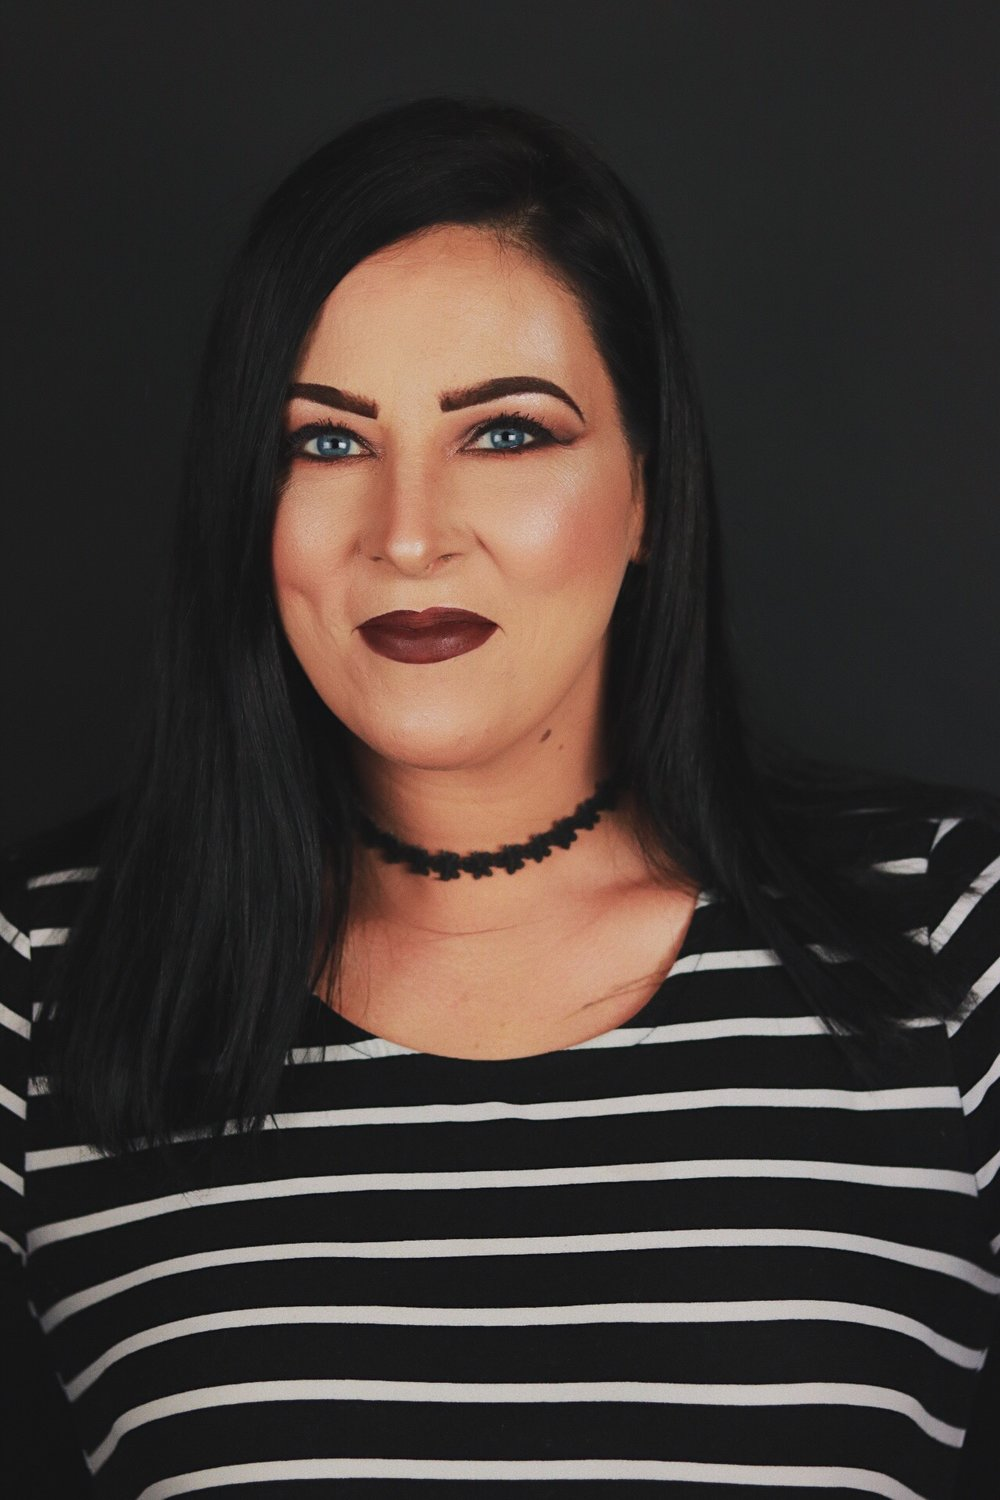 Tonya Curtis, Production Manager - When I'm not serving as PM, you can find me working on costumes, makeup, all things glam! I was born and raised in McMinnville, but bringing theater to this town is what makes me proudest. In my off time, I enjoy time with my amazing and supportive family Eric, Kaylee, and Brayden.